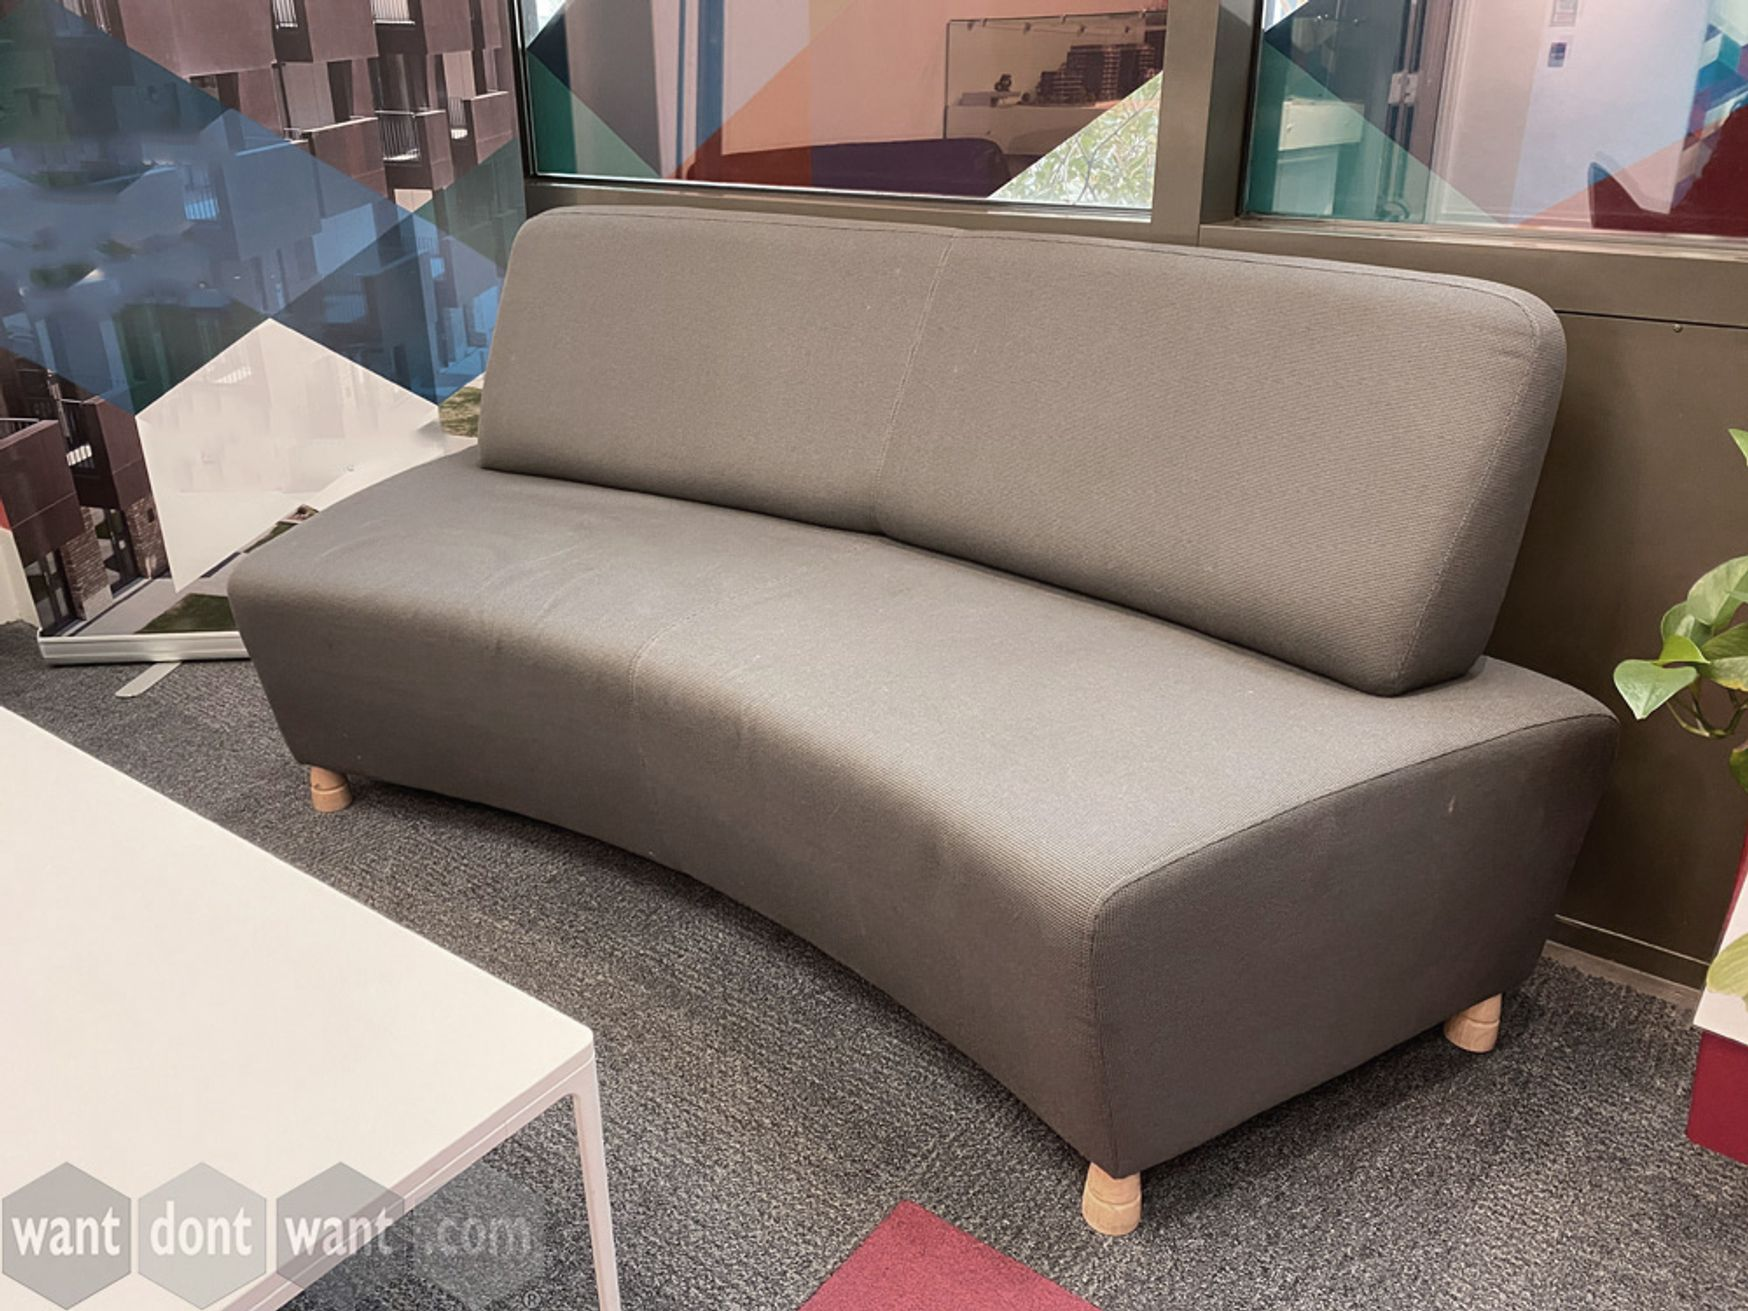 Used Boss Design 'Adda' curved sofa modules